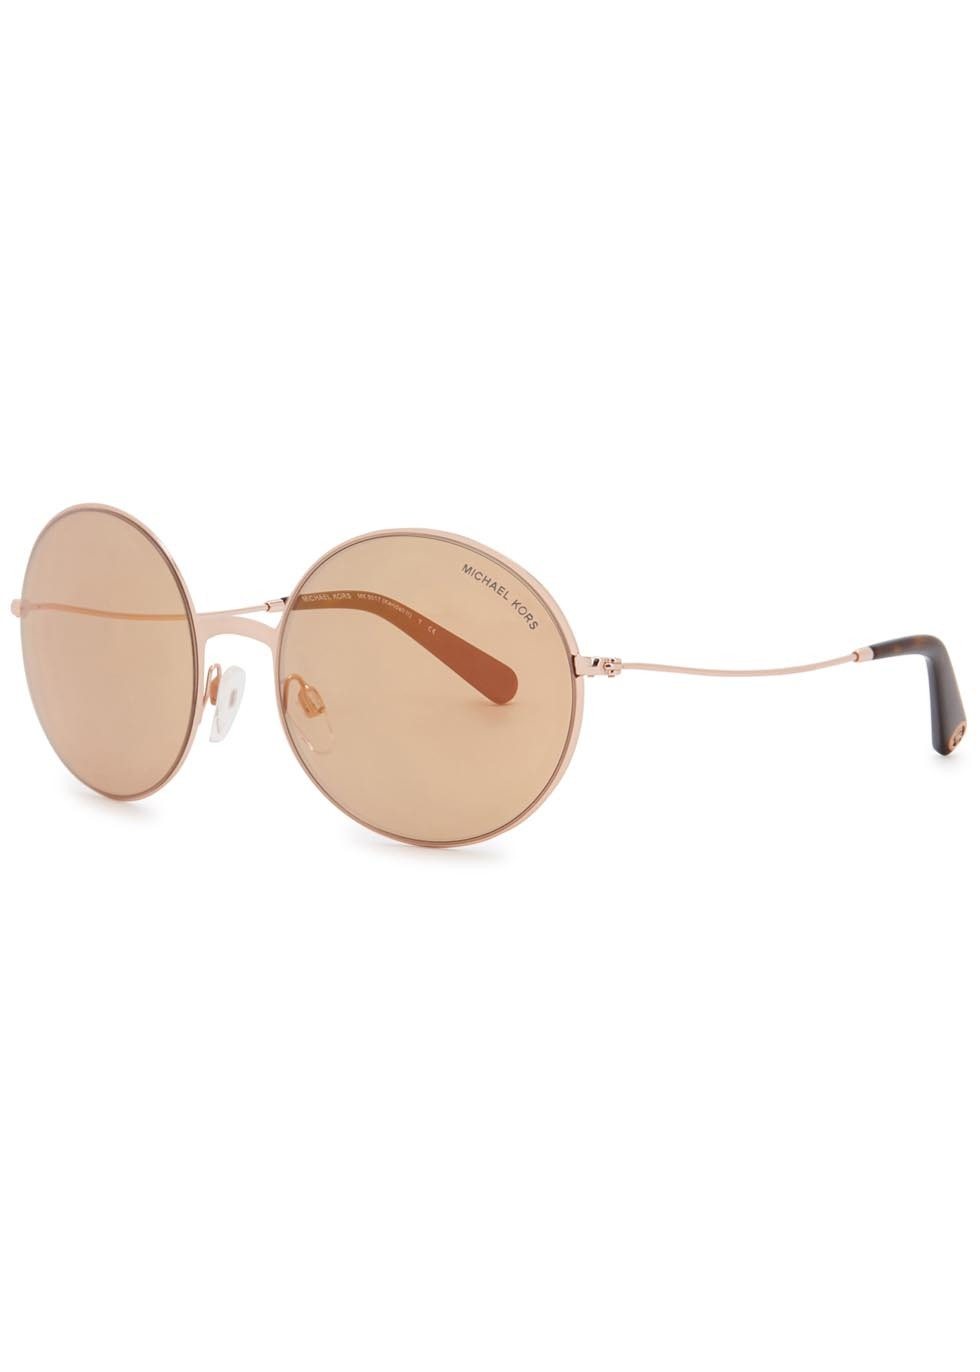 Kendall Ii Round Frame Sunglasses - predominant colour: gold; occasions: casual, holiday; style: round; size: standard; material: chain/metal; pattern: plain; finish: metallic; season: s/s 2016; wardrobe: basic